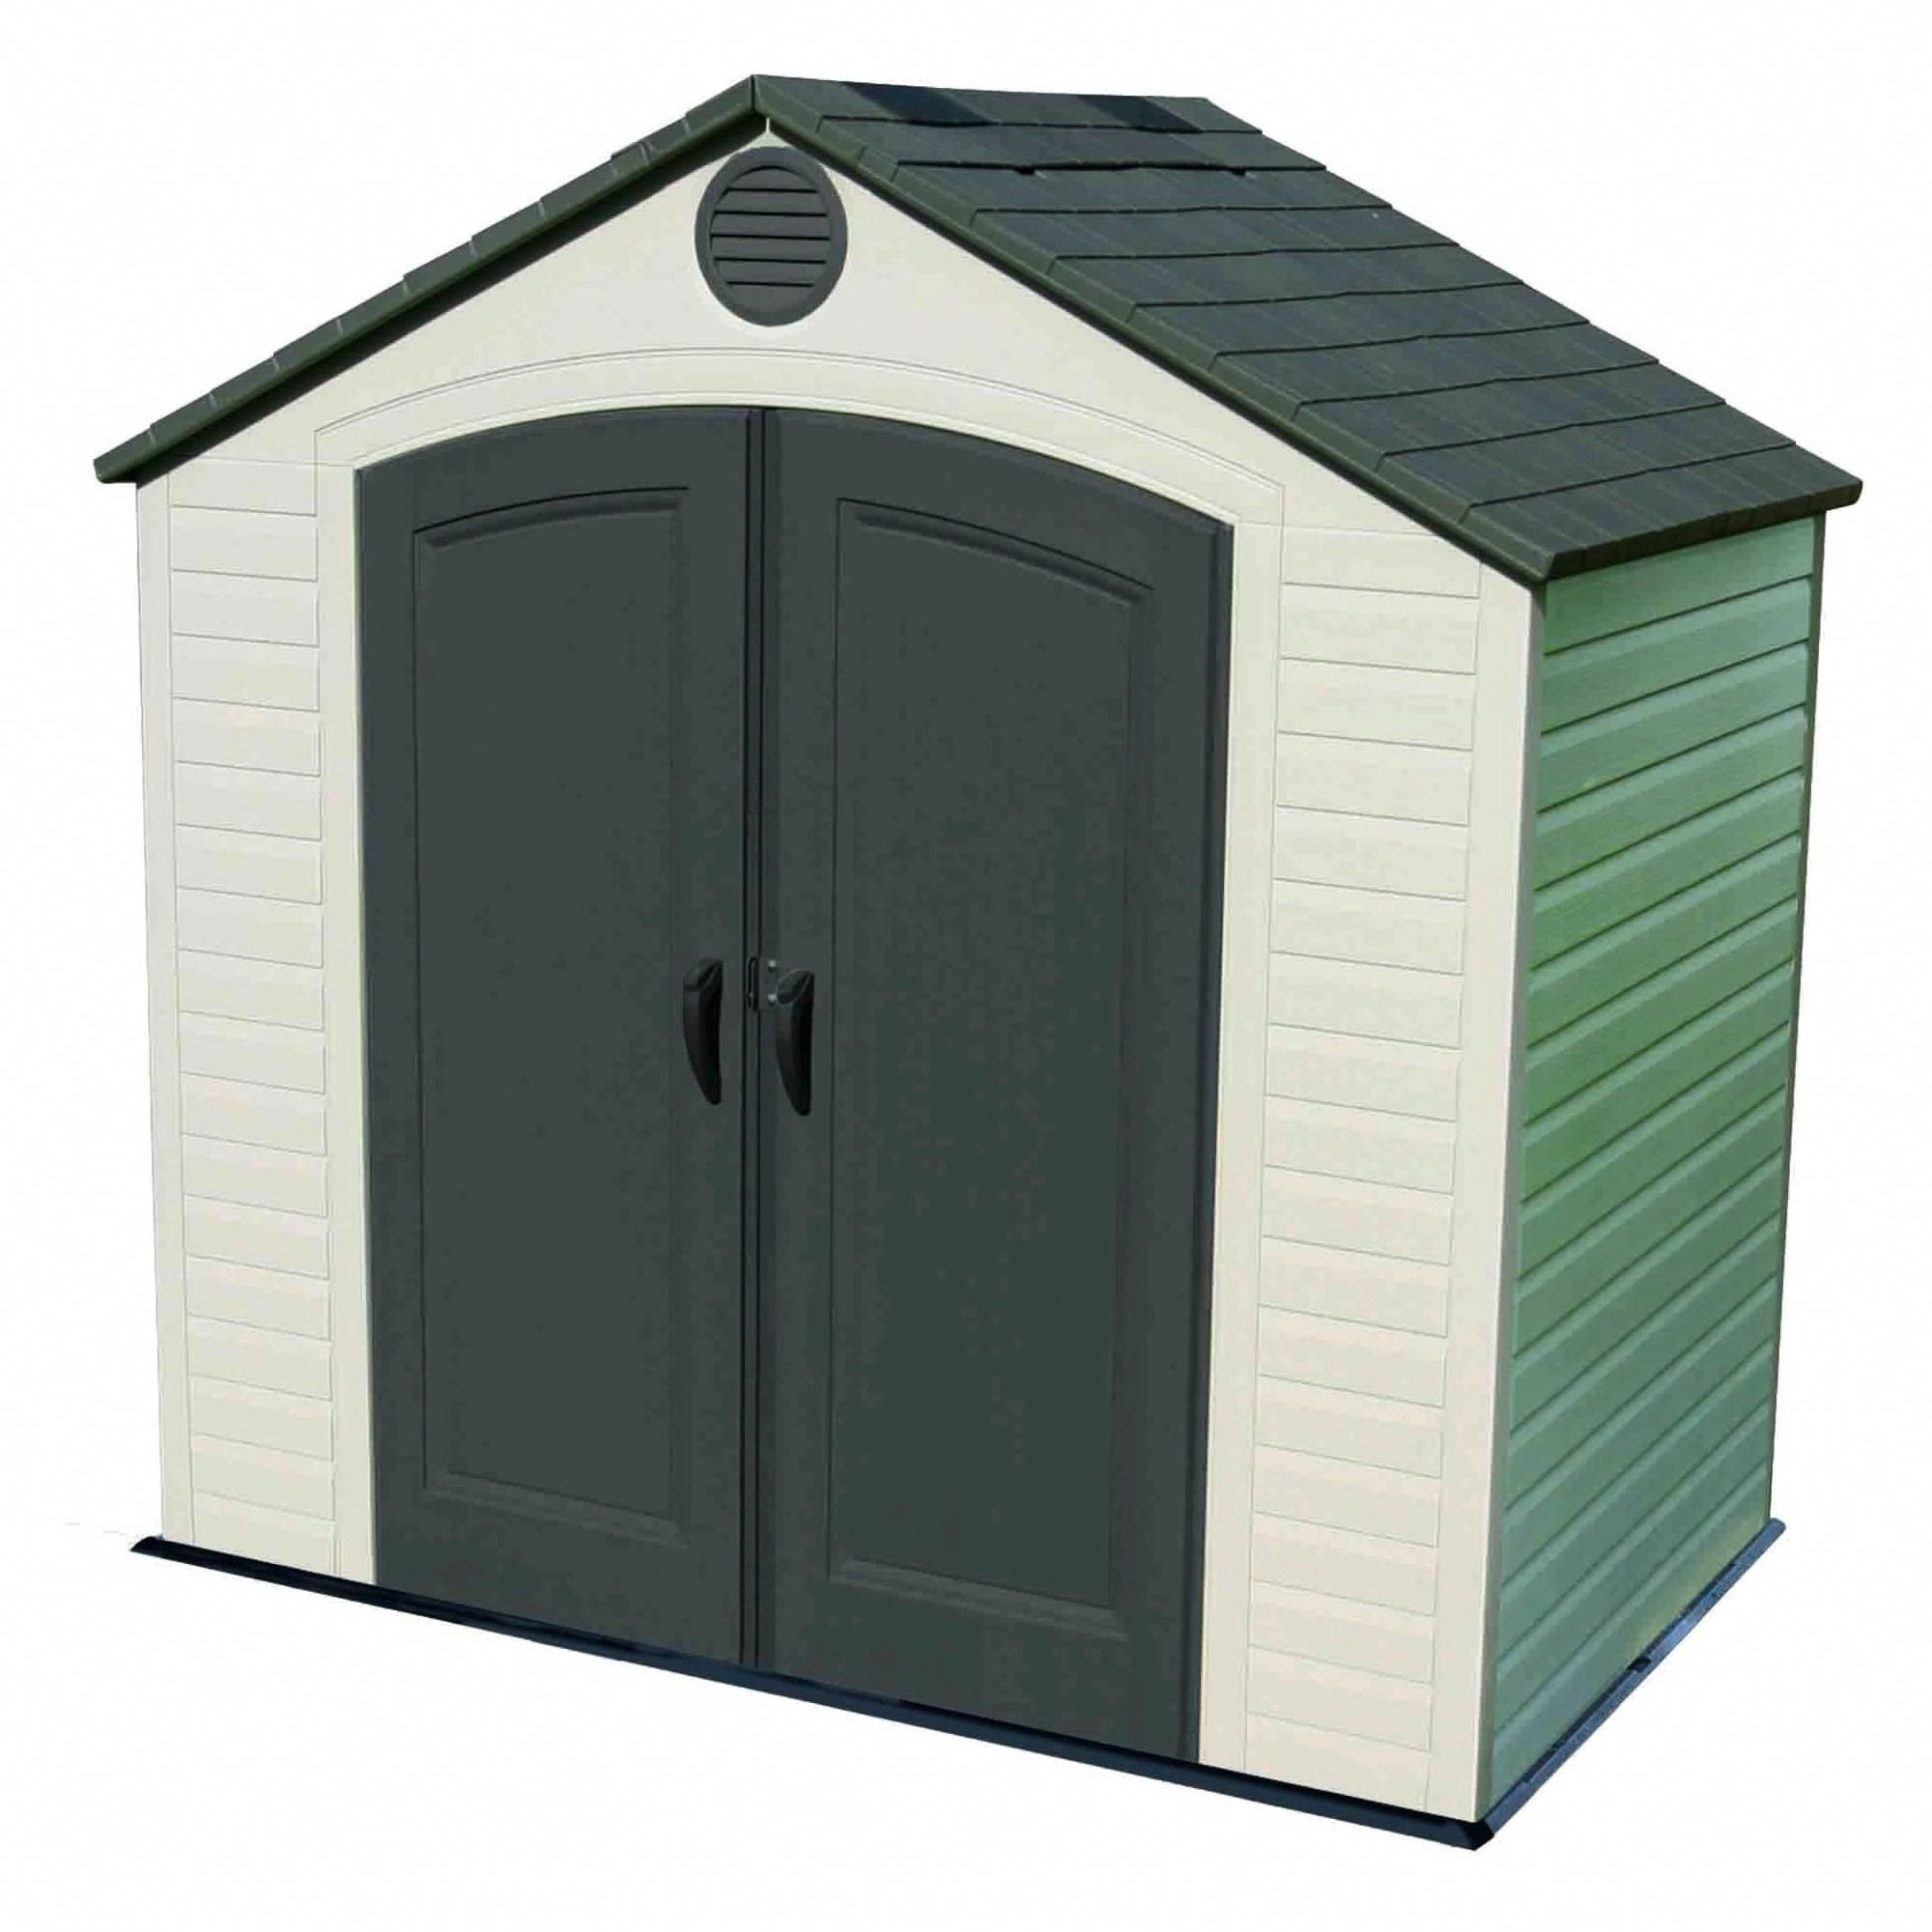 Outdoor Storage Shed 8 X 5 Desert Sand Lifetime Gray Plasticgardensheds Outdoor Storage Sheds Lifetime Storage Sheds Storage Shed